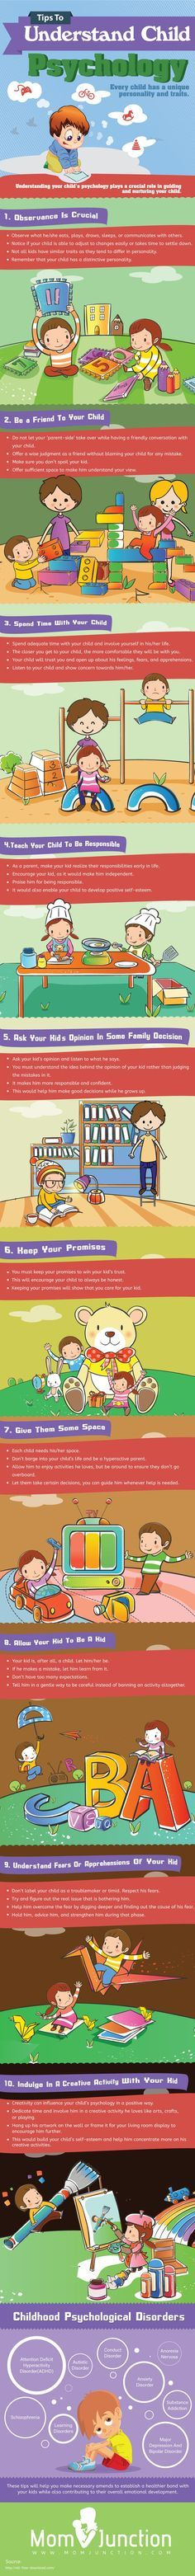 Are you unable to understand your child psychology? Here are 20 helpful tips to on how to understand child psychology,Psychological Disorders & contexts.